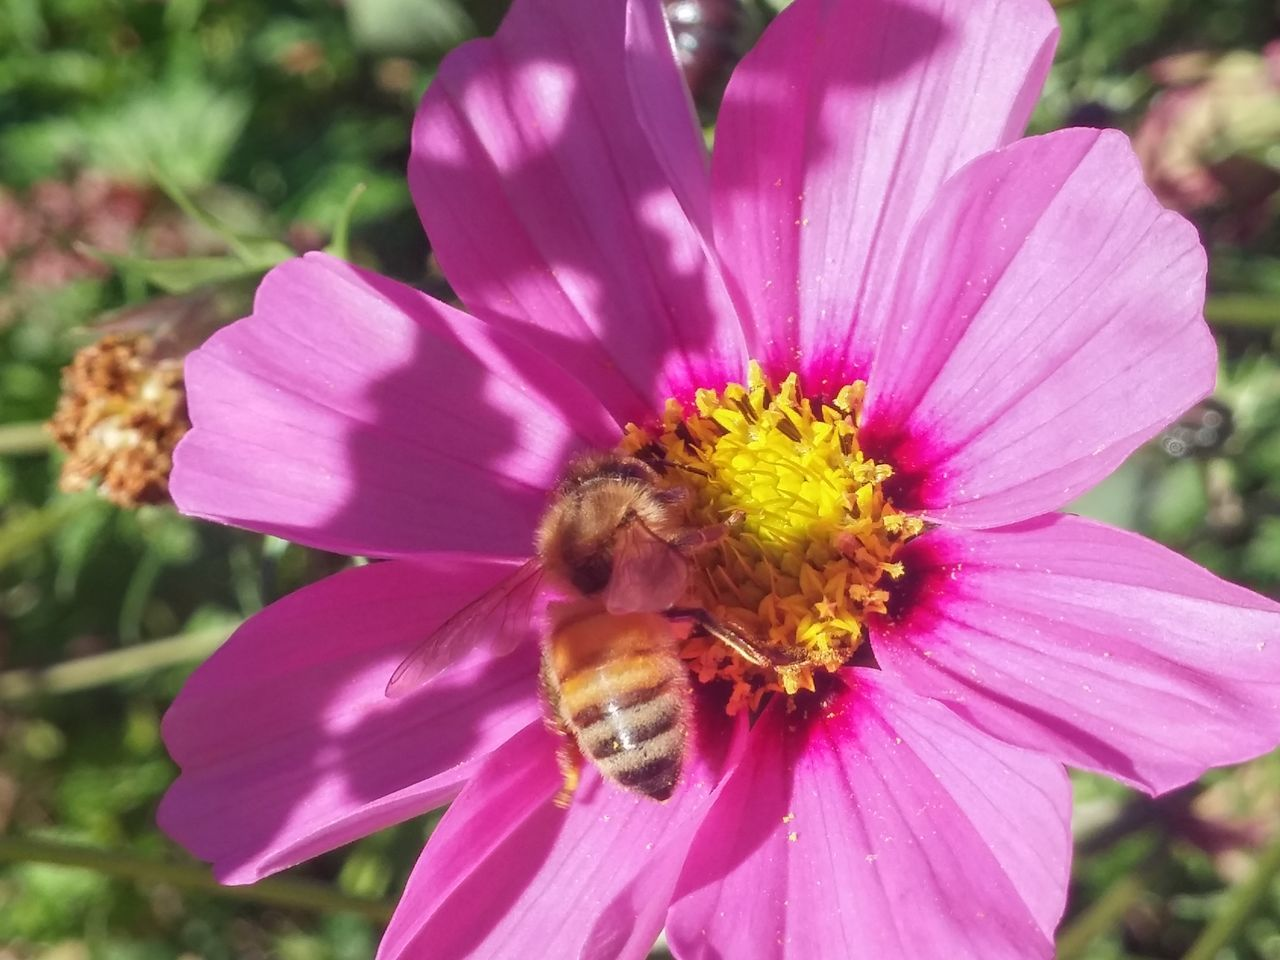 https://youtu.be/aYAJopwEYv8 🐝🐝 🐝dance Of The Bee🐝 Flower Pink Color Petal Nature Flower Head Insect Plant Fragility Outdoors Beauty In Nature Cosmos Flower Freshness Exceptional Photographs Focus On Foreground Autumn In New Zealand Cosmos Cosmos In My Garden One Insect Bee Close-up 3 Pollen Purple Plant